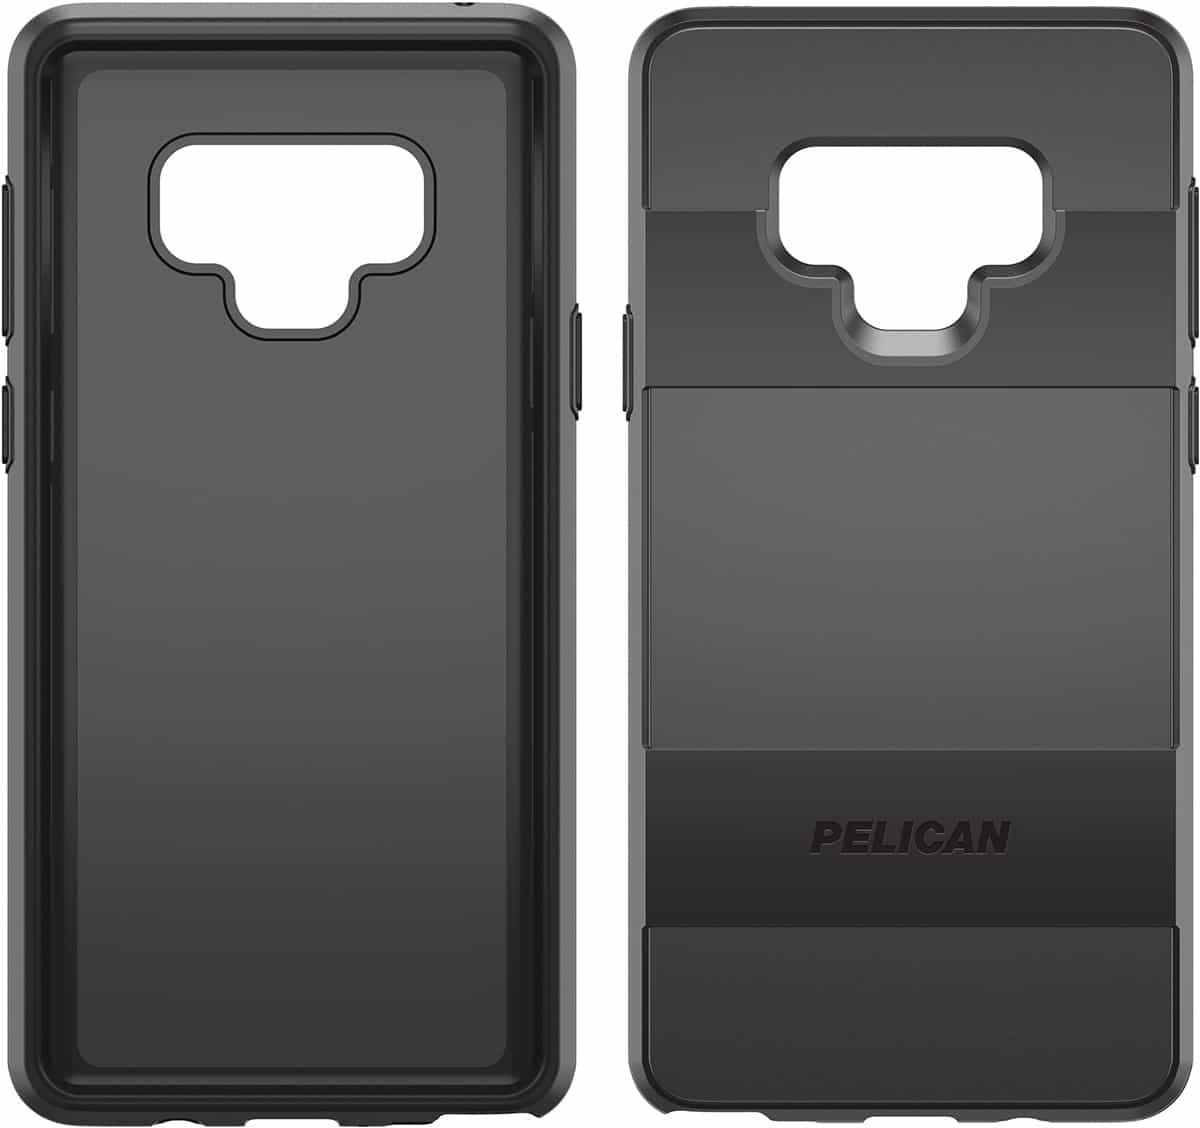 Pelican Voyager Galaxy Note 9 case 1